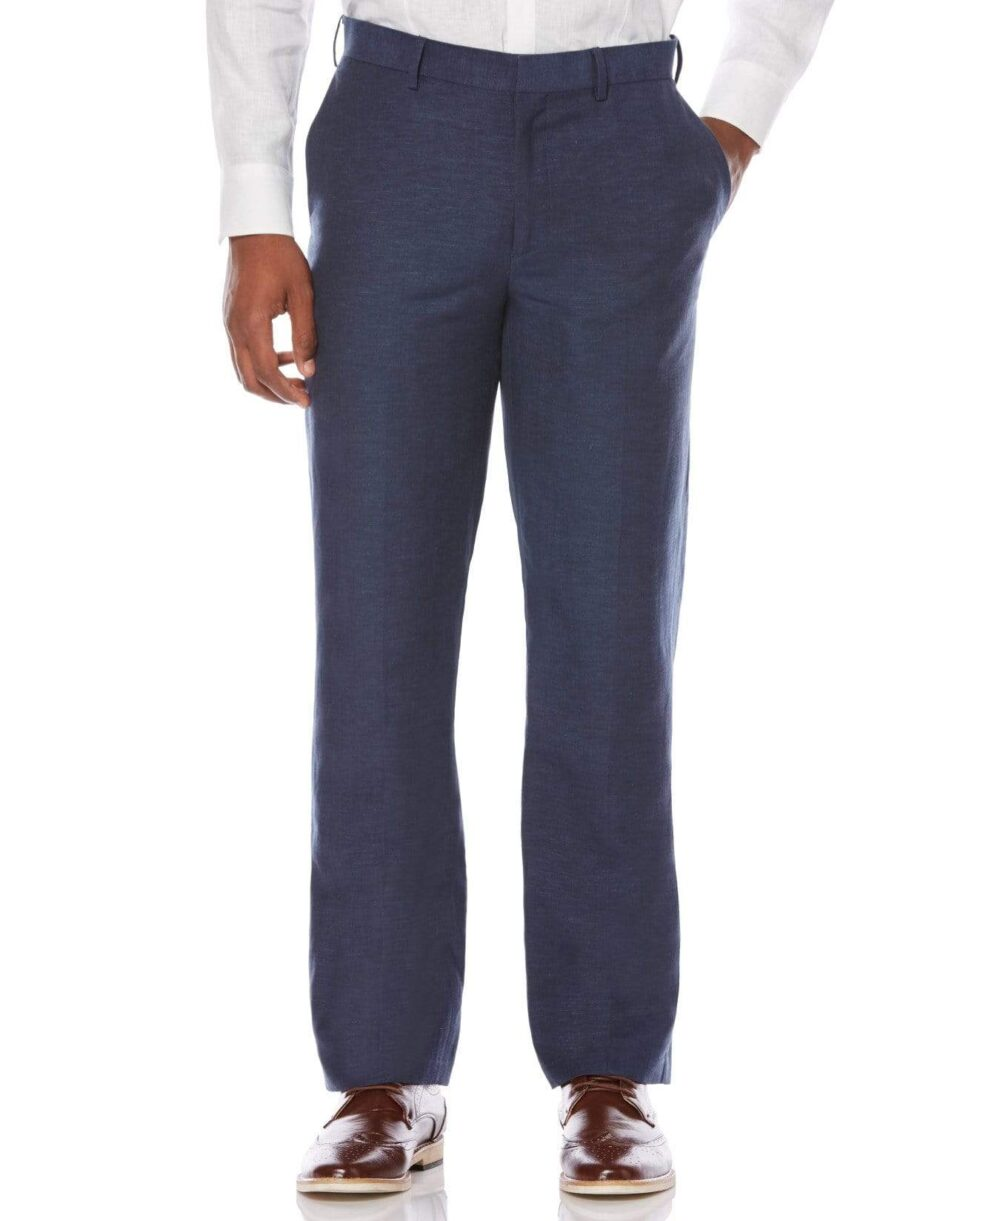 Cubavera Men's Big And Tall Flat Front Pants in Dress Blues, Size 44 x 32, Linen Blend